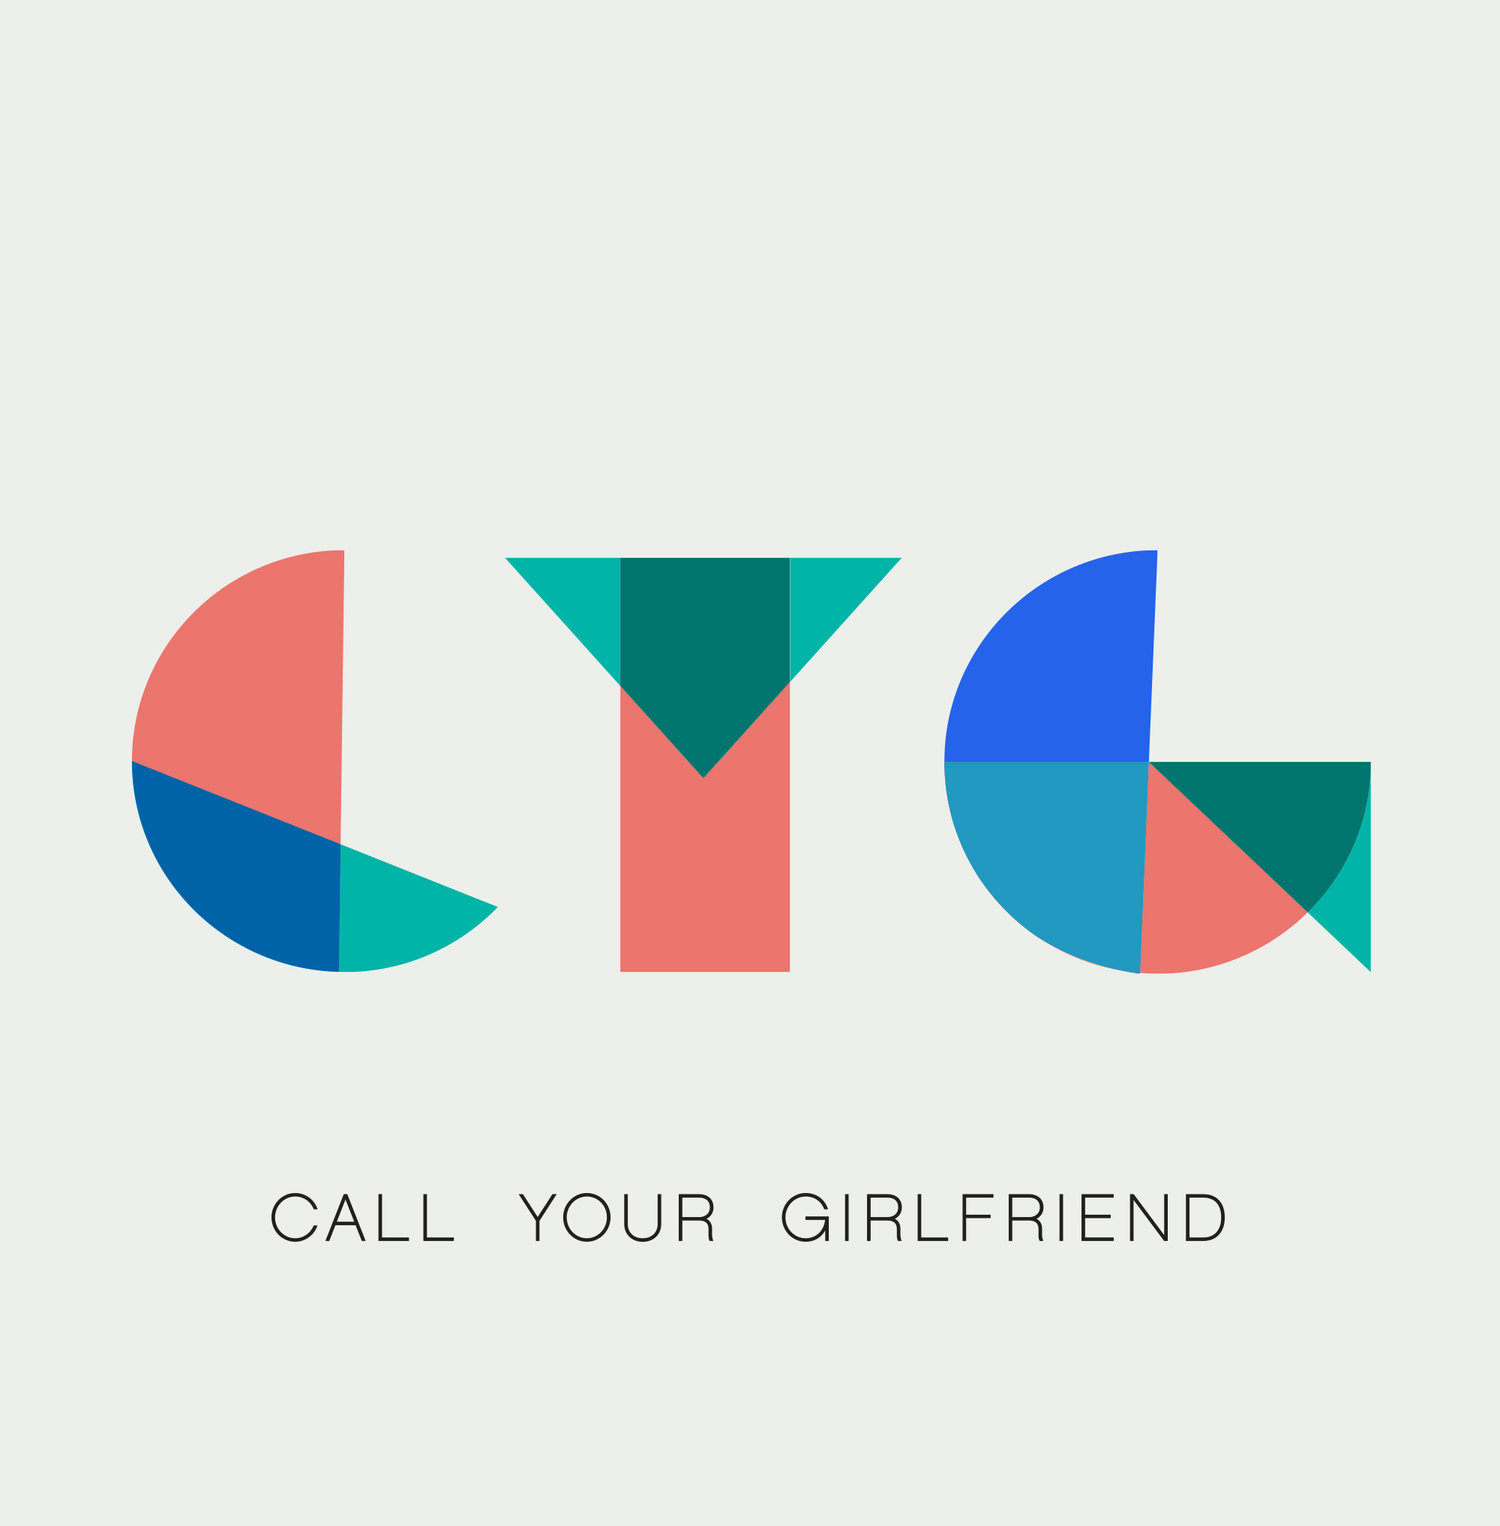 Call Your Girlfriend -